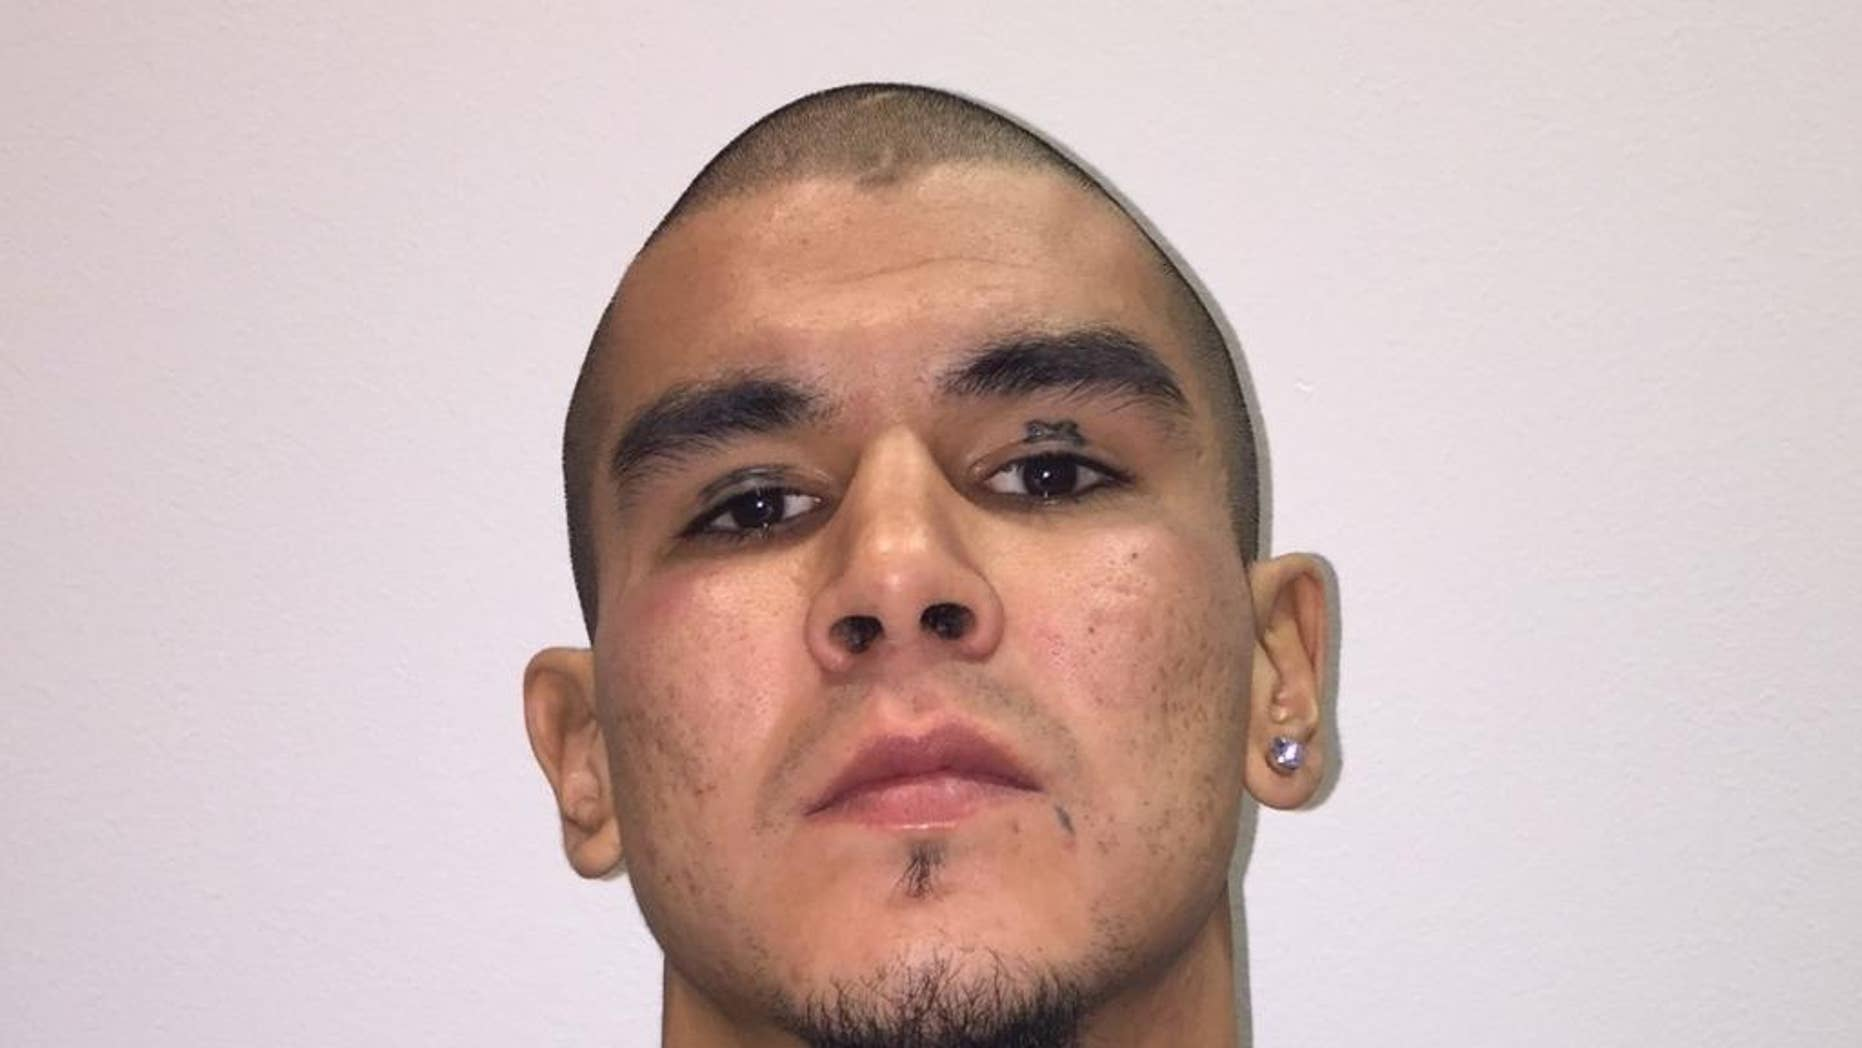 This photo released by Fairbanks Police Department shows Anthony George Jenkins-Alexie. The 29-year-old man was arrested in a shooting that left an Alaska police officer seriously injured. Jenkins-Alexie, of Fairbanks, is facing charges of attempted murder, assault and other counts in connection with the shooting early Sunday of Sgt. Allen Brandt. (Fairbanks Police Department  via AP)